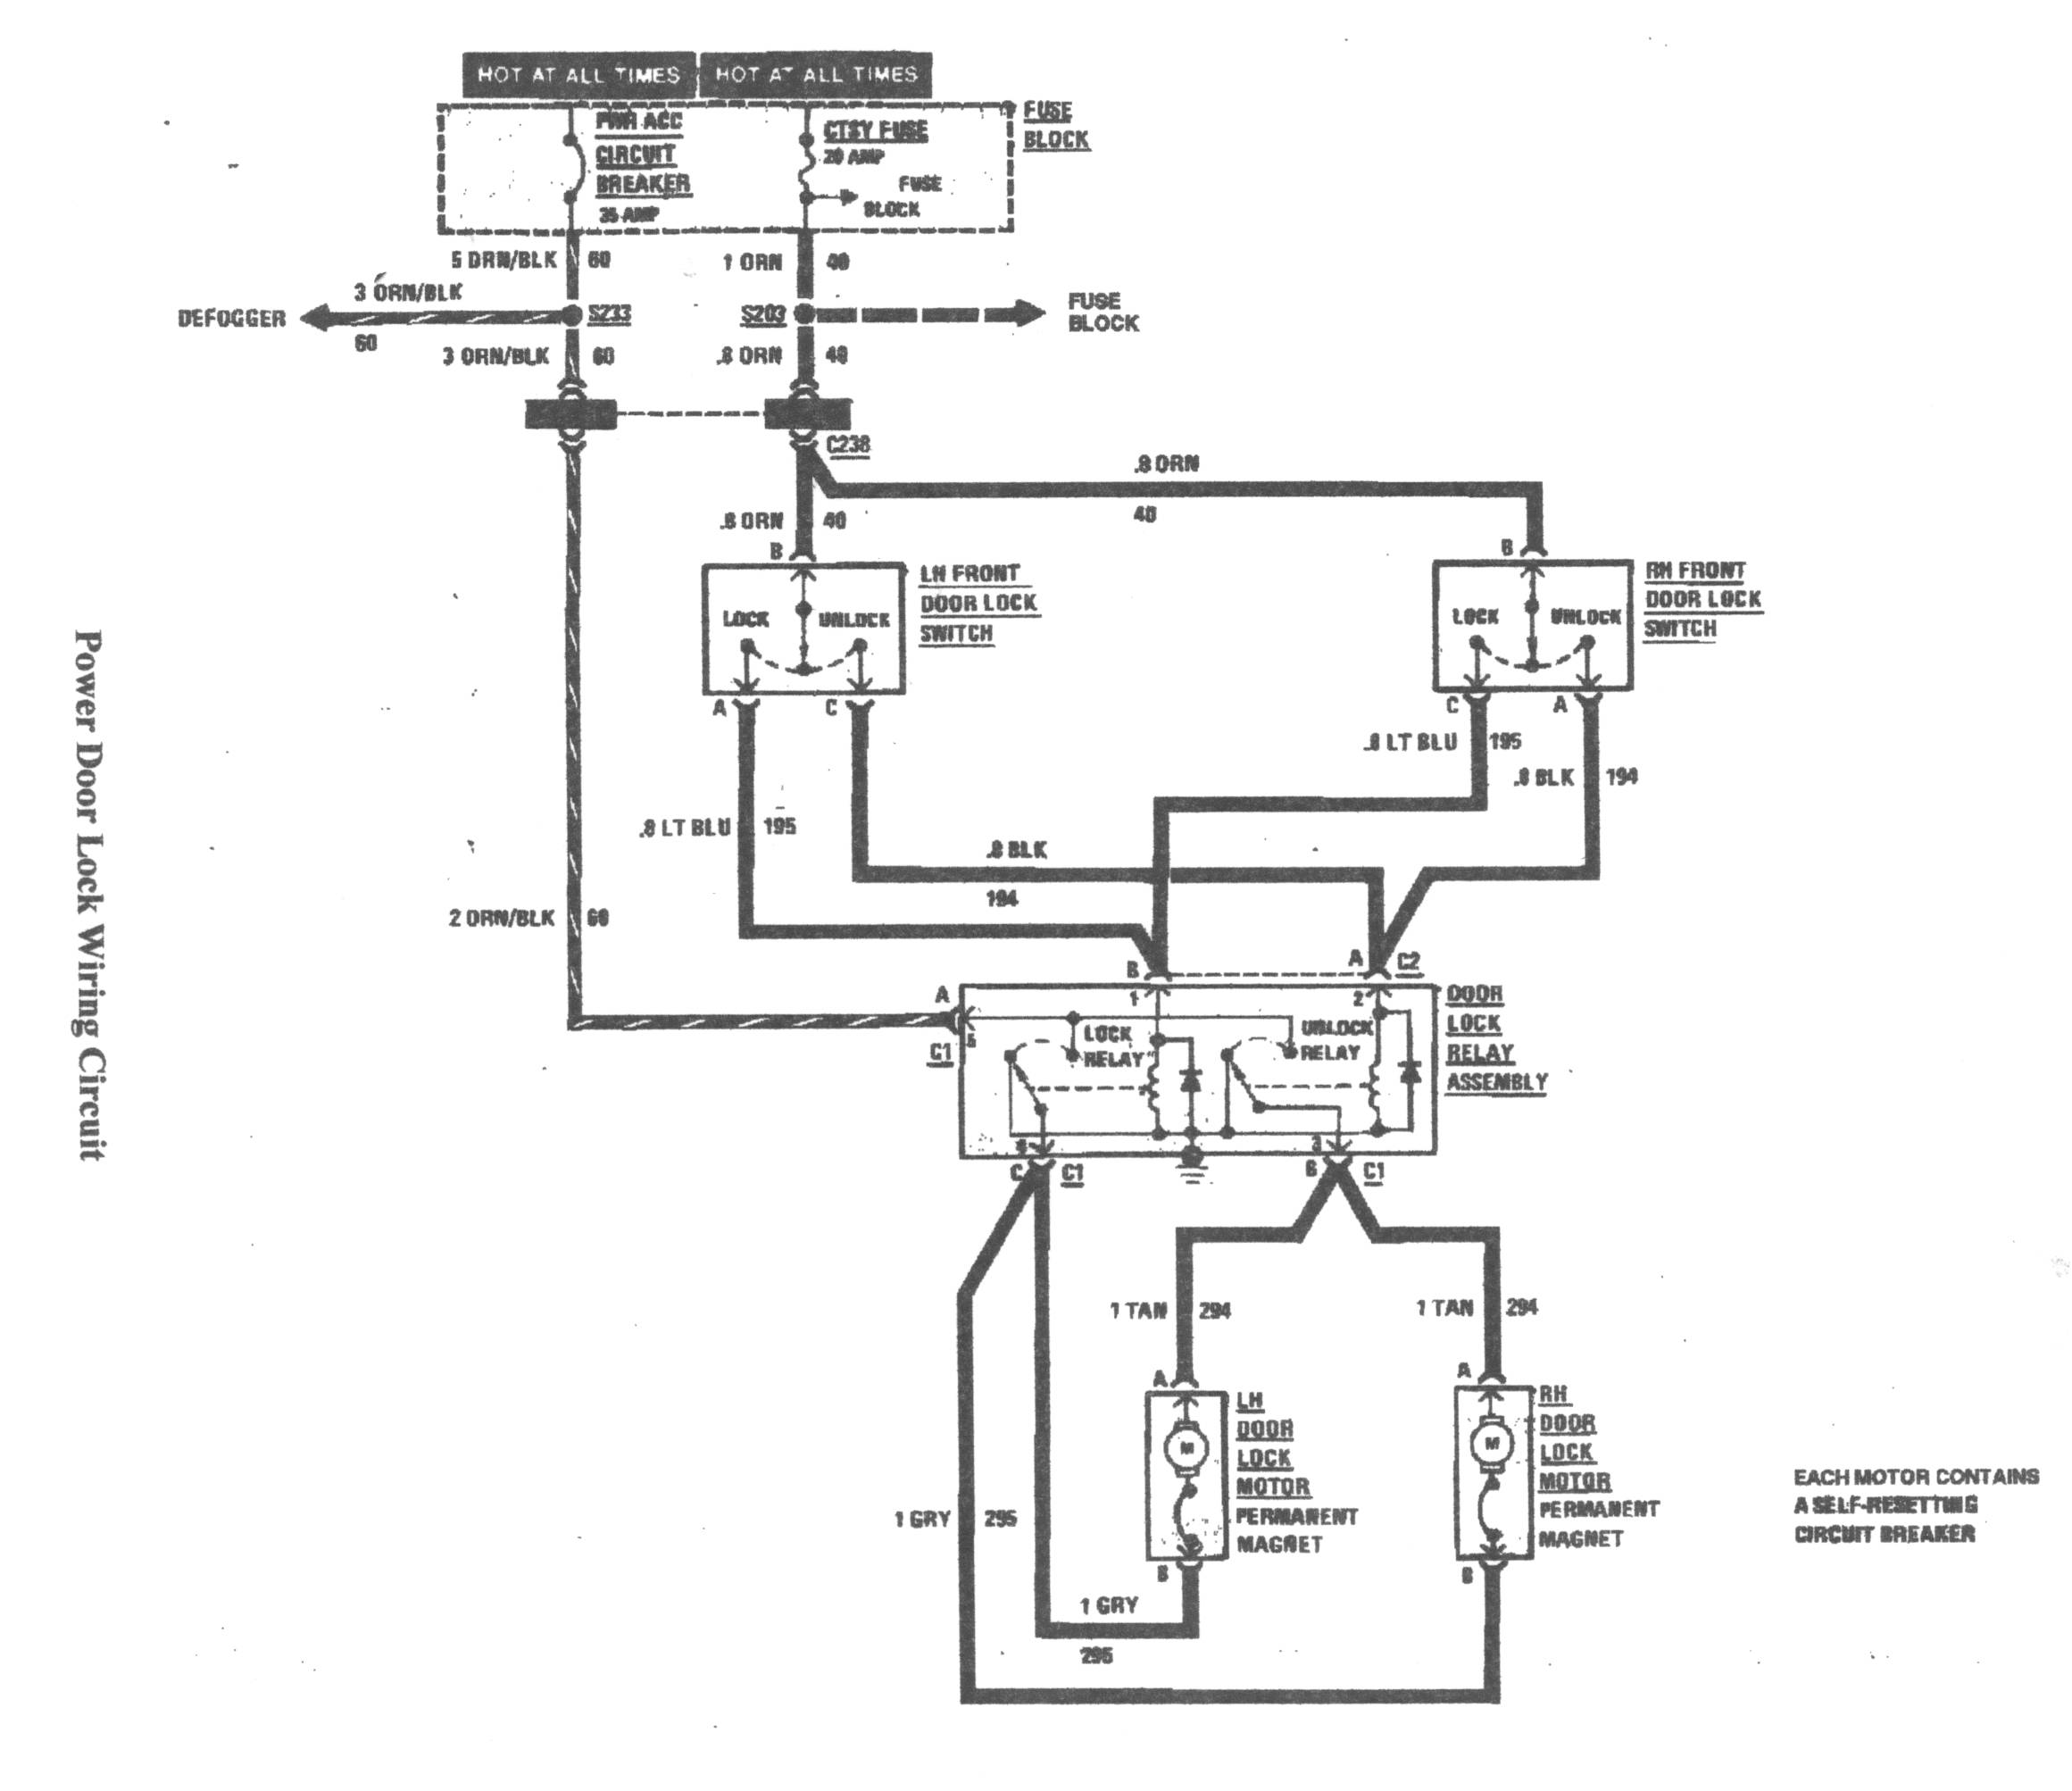 central locking actuator wiring diagram